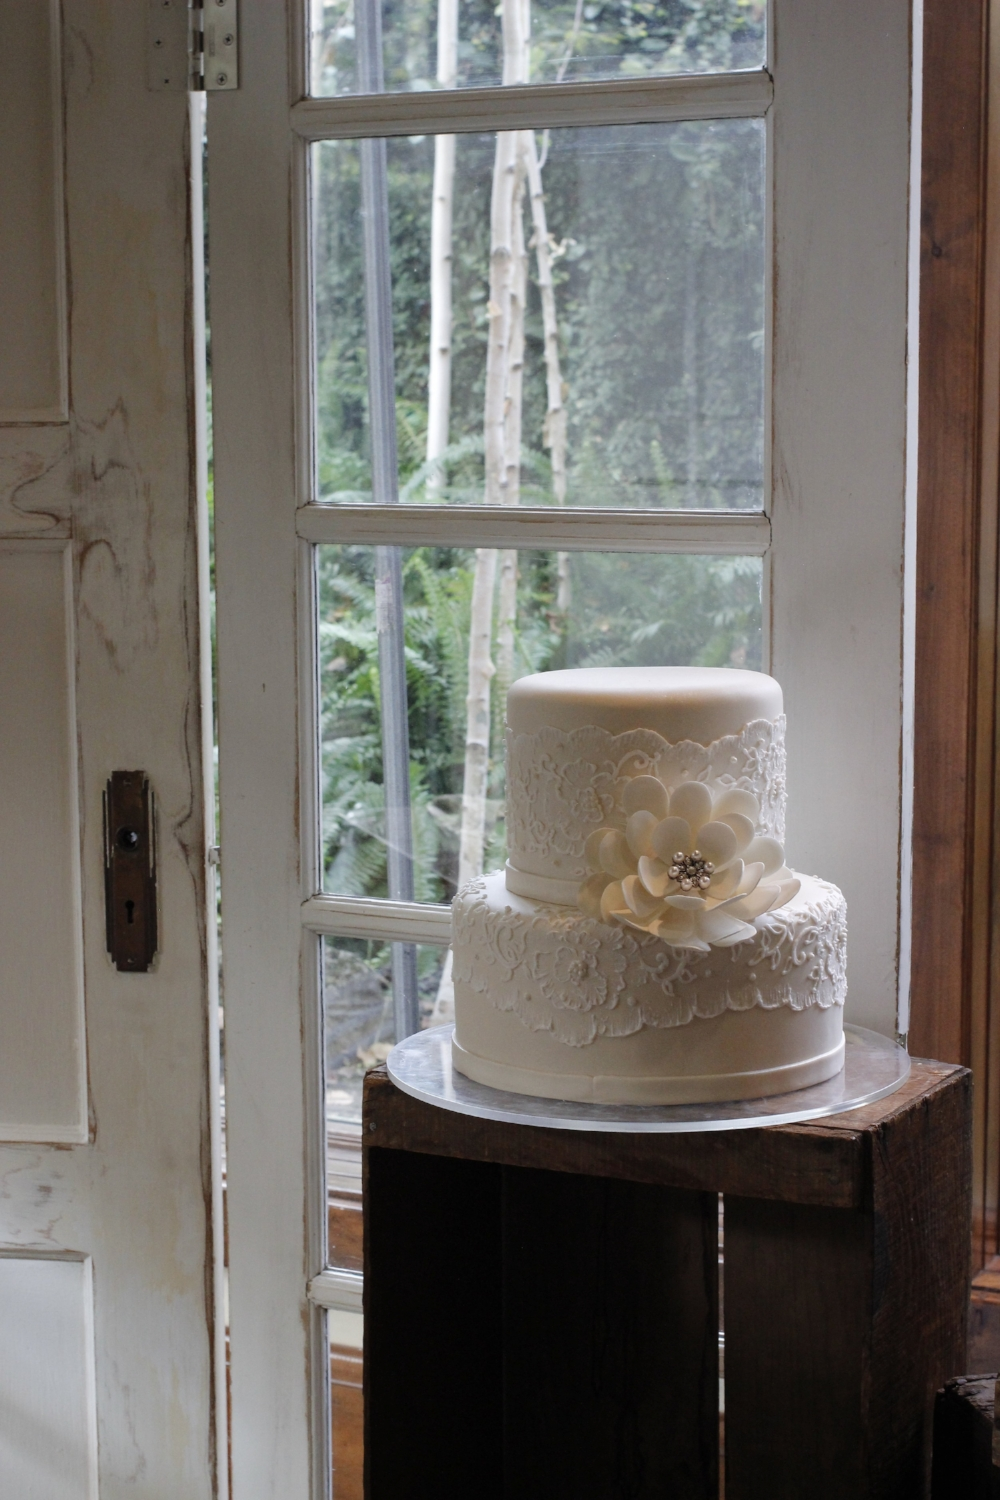 Vintage Wedding Door Altar Backdrop Cake Display